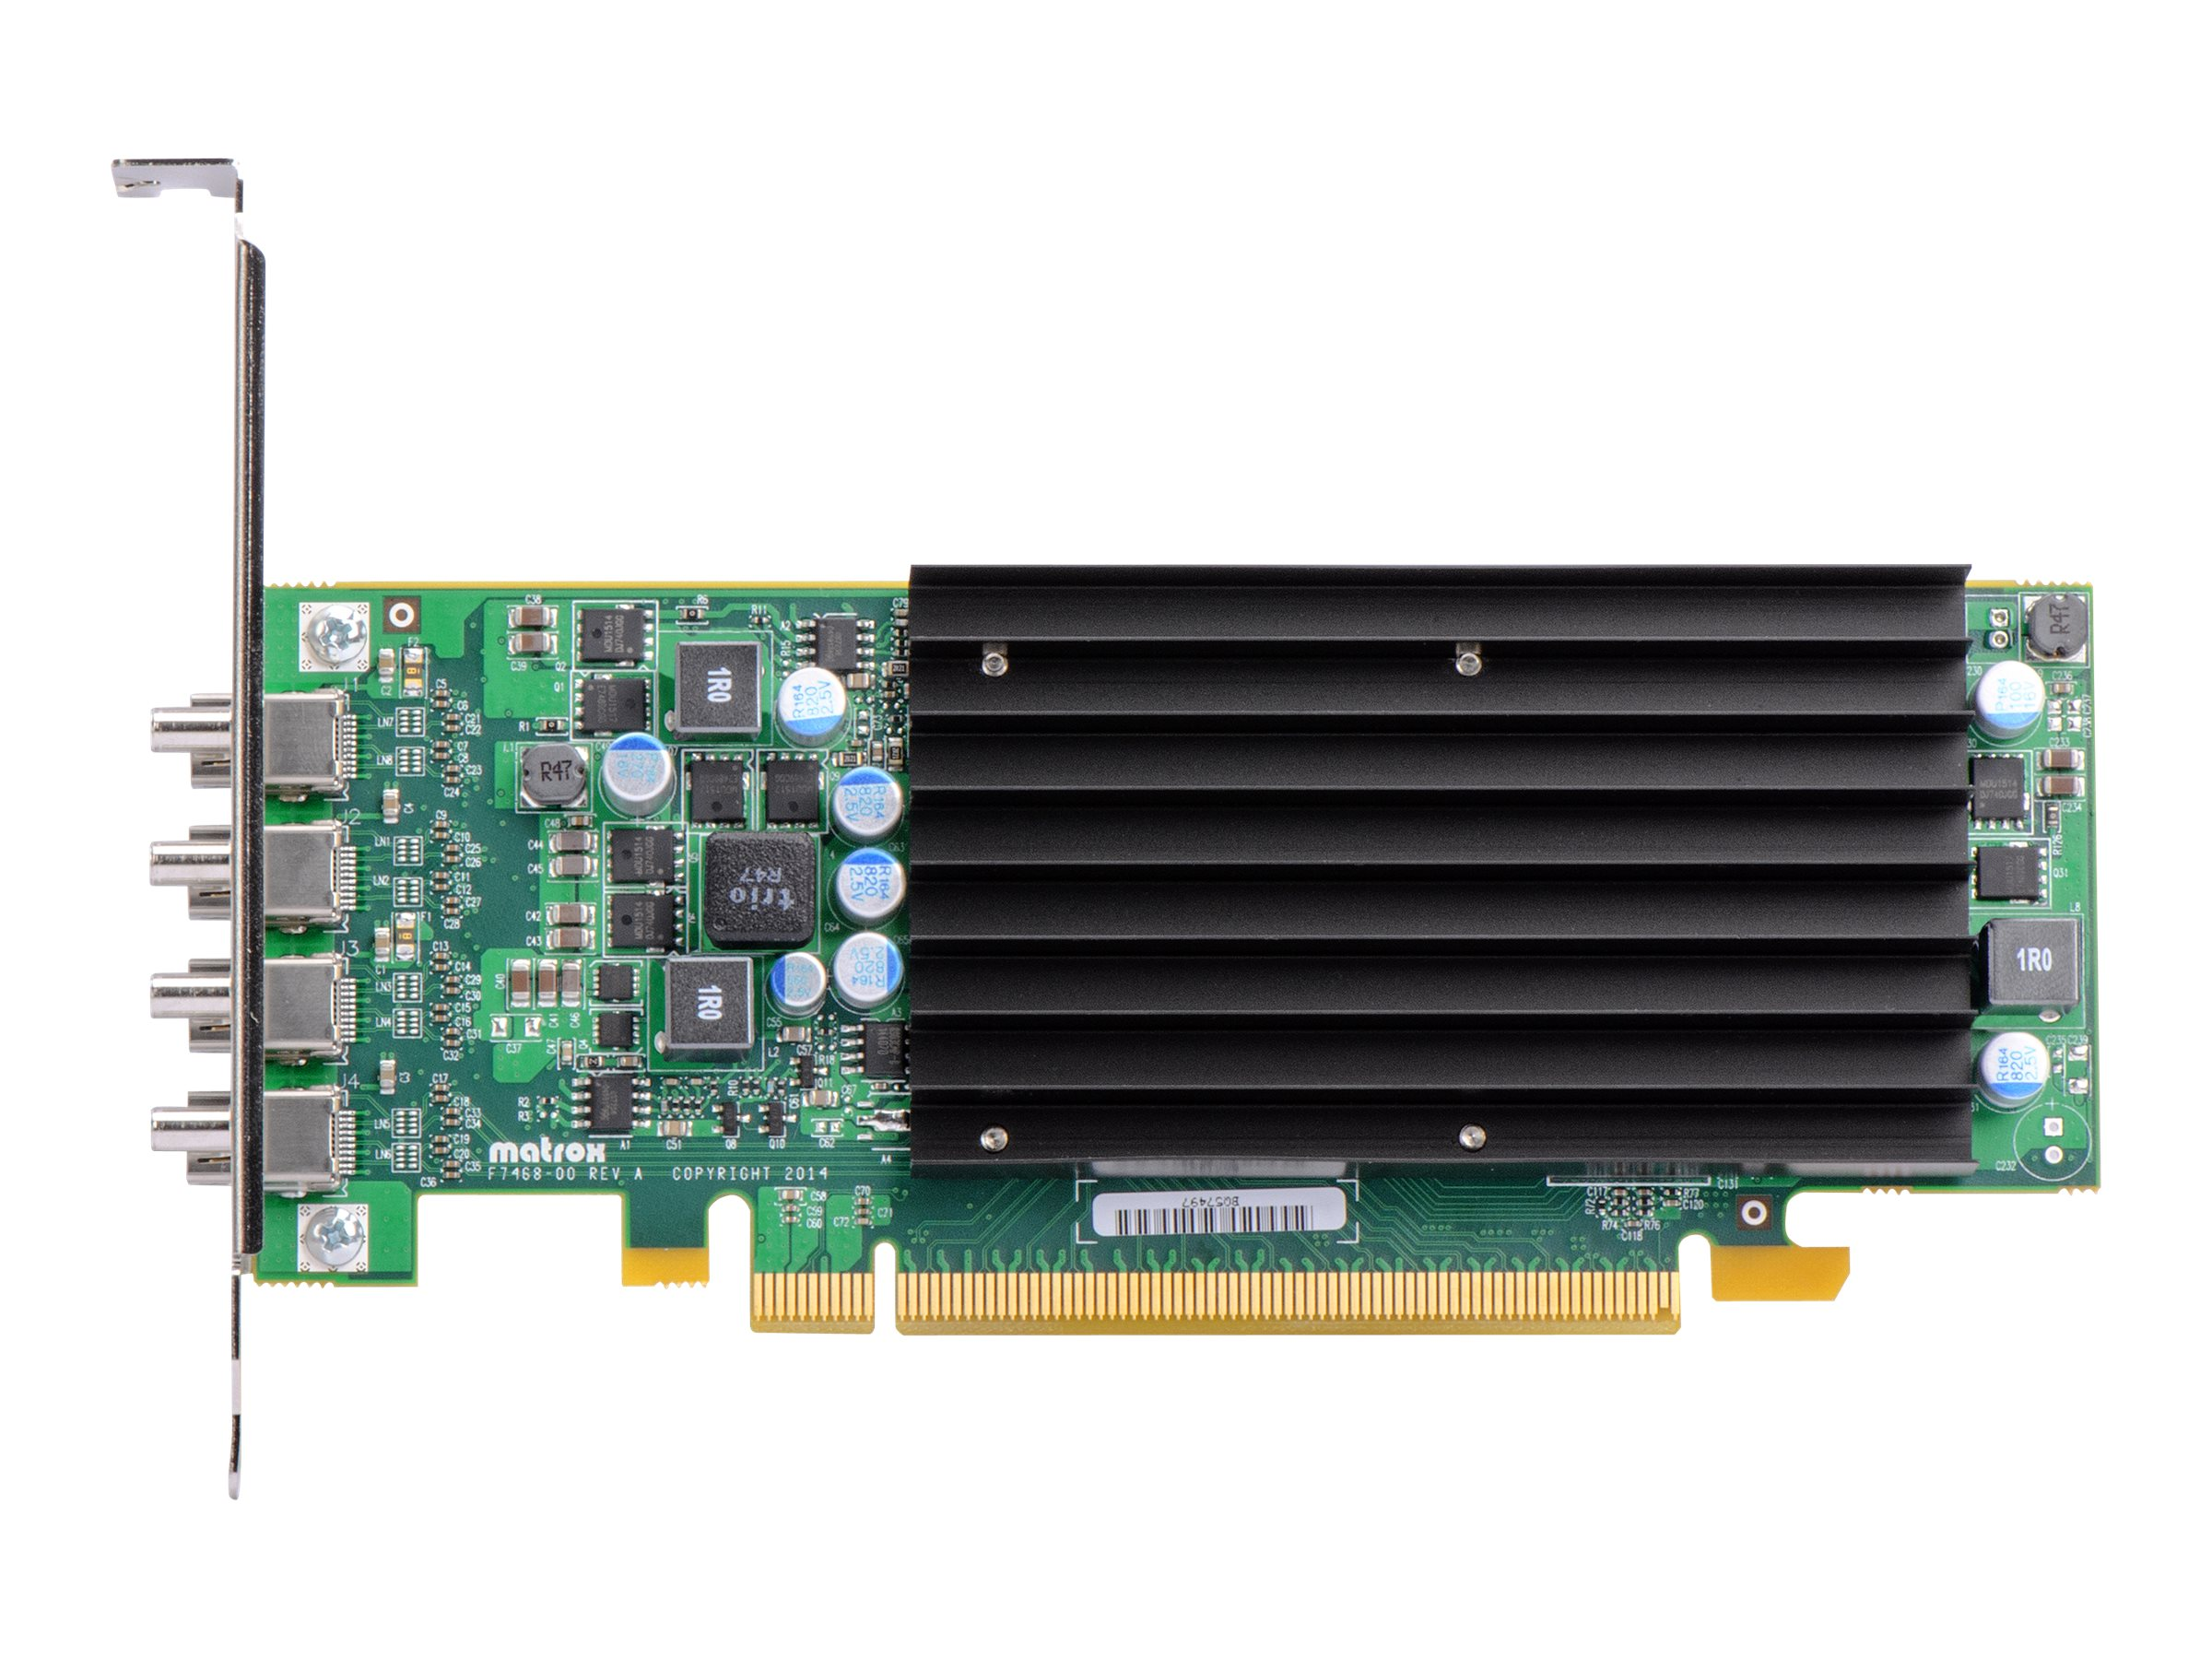 Matrox C420 PCIe 3.0 x16 Low-Profile Graphics Card, 2GB GDDR5